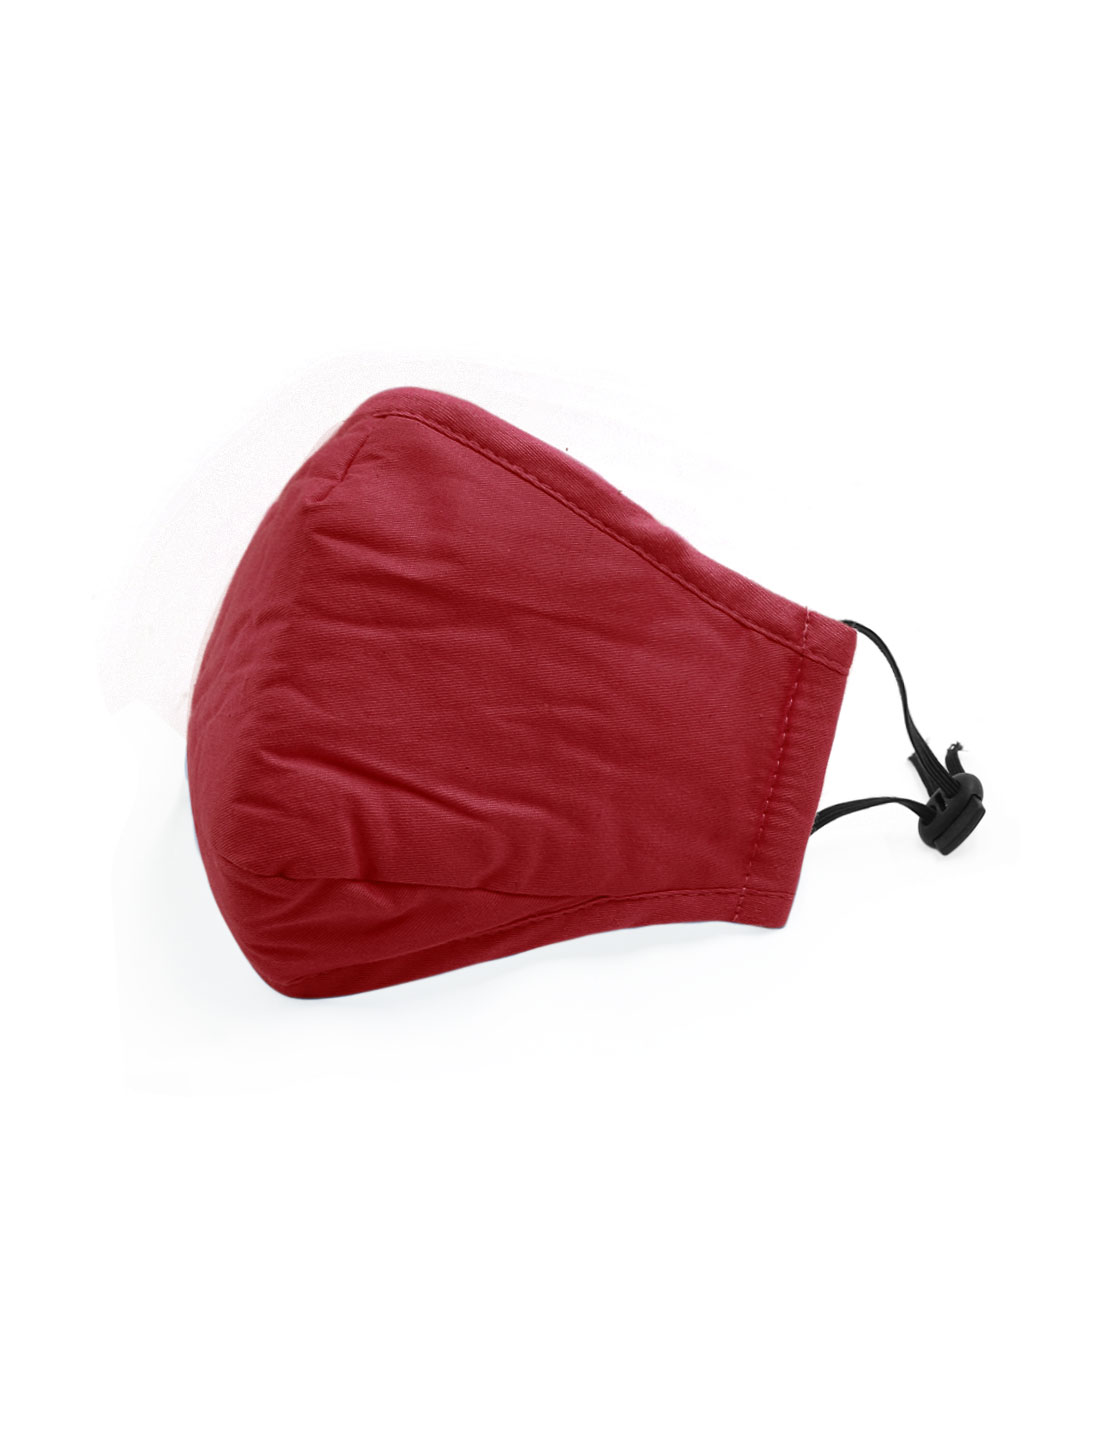 Unisex Anti-dust Face Mask w Activated Carbon Filter Red